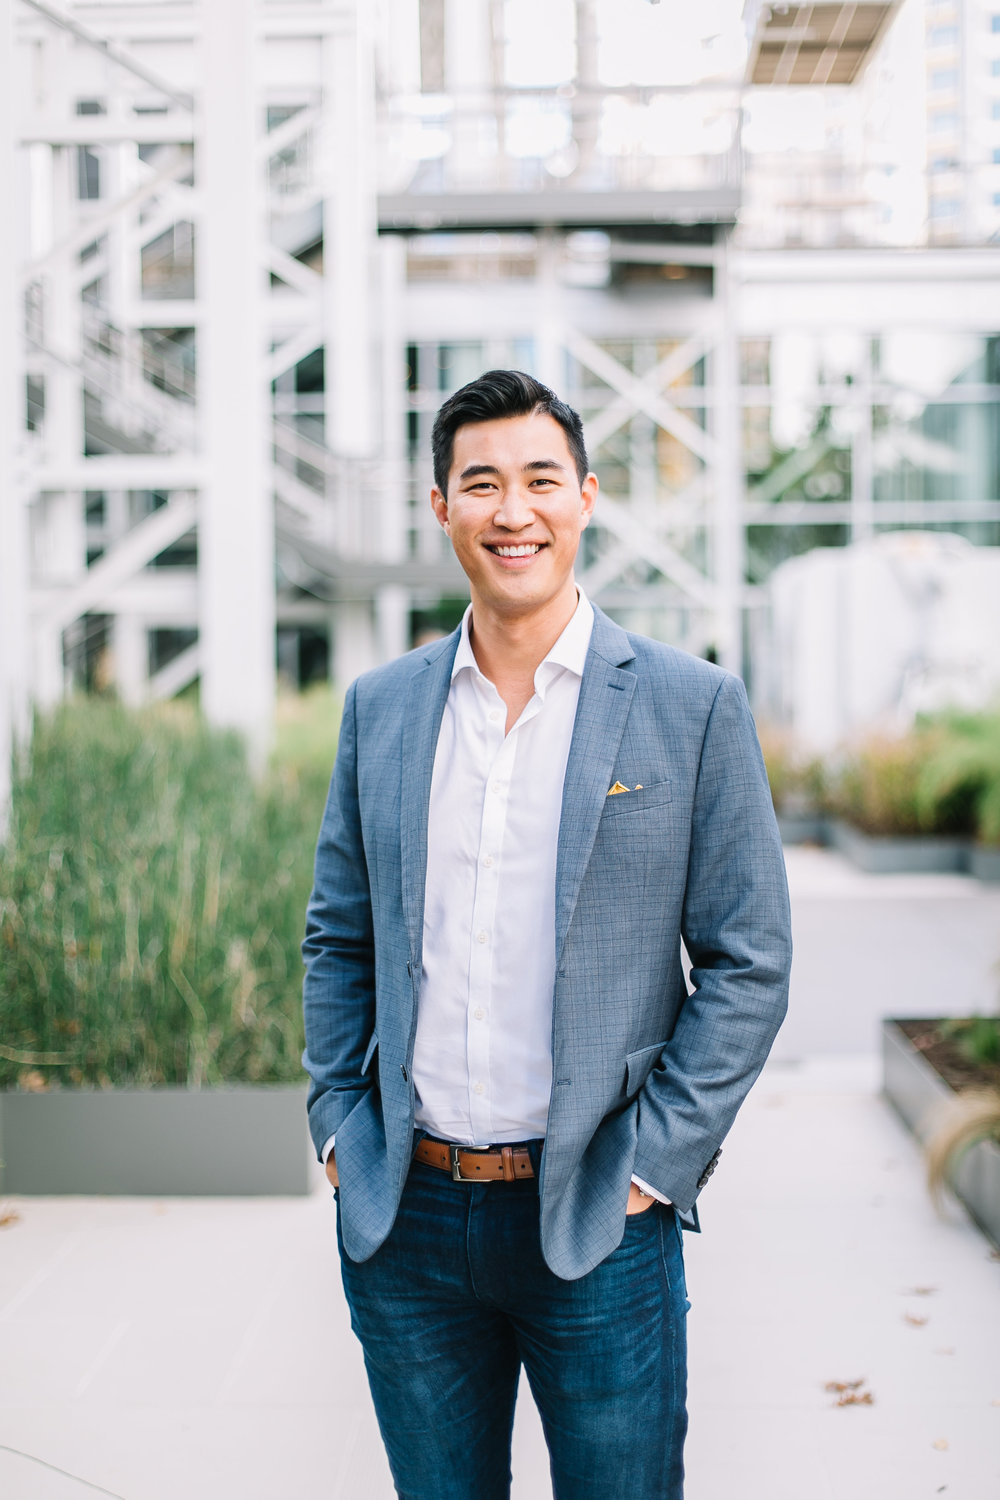 "Wes is a listener, learner, and entrepreneur advocate. He started his first entrepreneurial venture running a candy bar arbitrage business at age 10.  He is the Founder & Chairmen of XCL Group, a peer-to-peer accountability panel for young entrepreneurs and future CEOs.  He is also the Host of The EnTRUEpreneurship Podcast, a business podcast highlighting the true highs-and-lows in the life of an entrepreneur.  Wes serves as the Vice Chair at ForbesBooks, where he assists business professionals in creating their book concept and go-to-market strategy. His clients have included billionaires, Fortune 500 CEOs and multiple Entrepreneurs of the Year.  Wes is the Author of Lead the Field for Finance Professionals, a book written to help financial professionals understand the changing marketing landscape and how to differentiate oneself in a competitive environment.  Wes's work as an entrepreneur, marketer and story-teller, has been featured in Forbes, Money Watch, and many other top-tier media. An active speaker, Wes has given talks at The University of Texas, SXSW Interactive, FPA (Financial Planning Conference), and Million Dollar Round Table (MDRT).  In his prior life, Wes led the Sales and Marketing team at Shelton Interactive, an award-winning digital agency representing over 30 New York Times and Wall Street Journal best-sellers, including Chicken Soup for the Soul and Captain Sullenberger, famed pilot of the ""Miracle on the Hudson"" and ""Sully"" the movie. Wes's contributions at Shelton Interactive led to the agency's acquisition 2 years later.  Prior to Shelton Interactive, Wes led the due diligence team at an Austin-based venture capital firm, overseeing investor relations for over 25 different companies and transacting over $20 million in funds raised throughout two years.  Wes is a native Austinite and son of Taiwanese immigrants. In his personal time, you will likely find him reading, writing, and spending time outdoors. He has been known to be an avid traveler, never spending too much time in one place. His journeys have come to be known as ""The Wescapades"" by his fellow friends and colleagues."